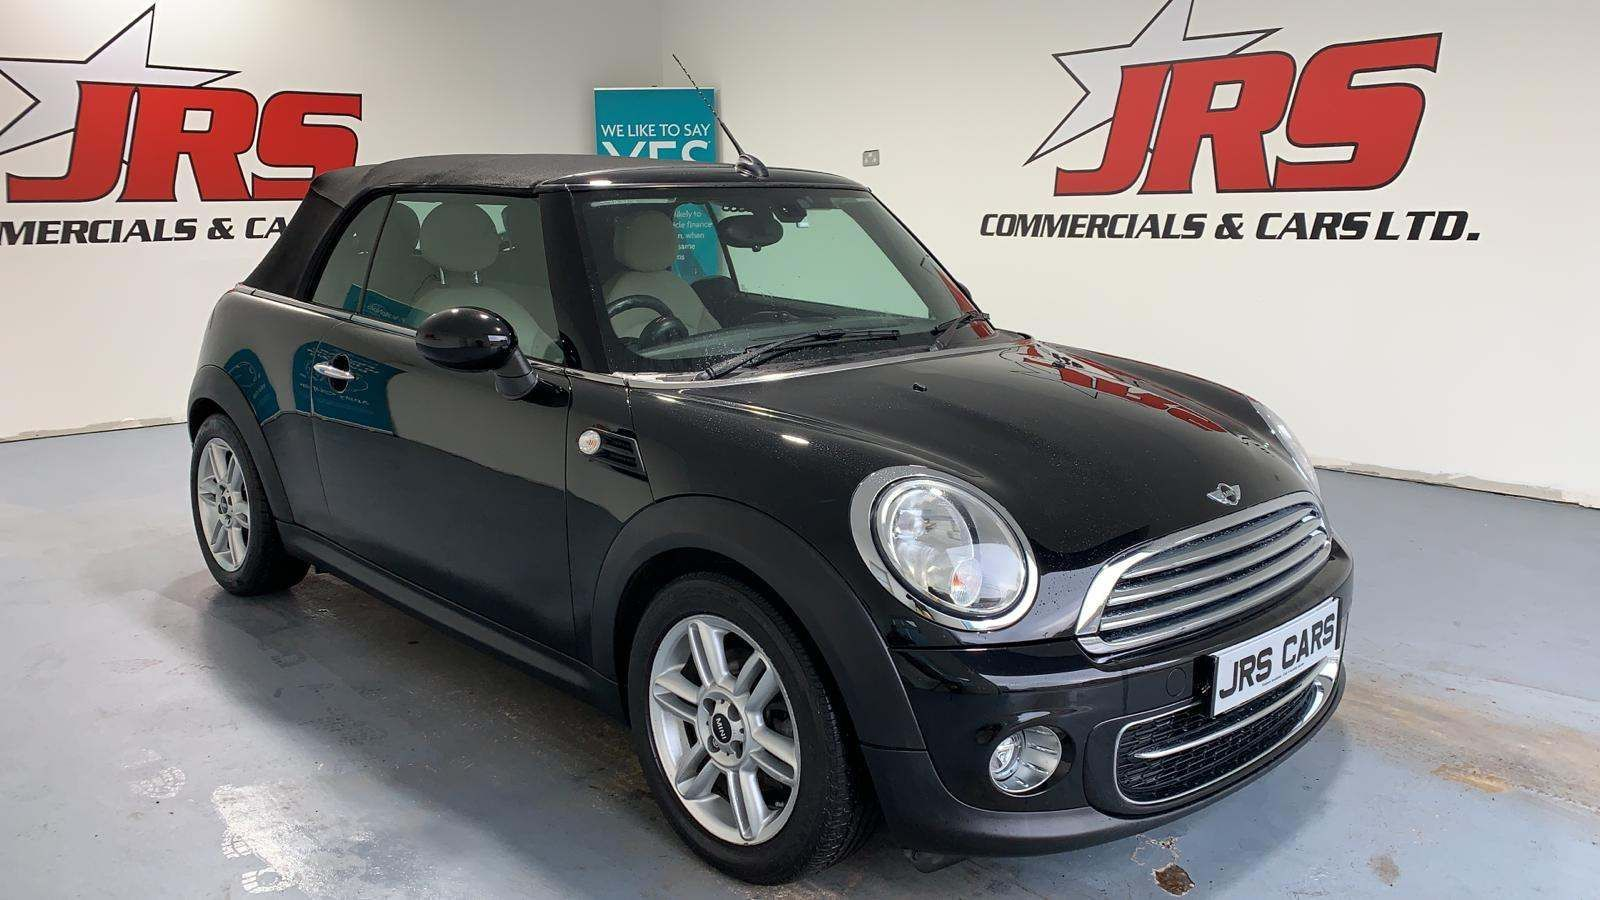 2014 MINI Convertible 2.0 Cooper D Diesel Automatic **View By Appointment Only** – J R S Commercials And Cars Dungannon